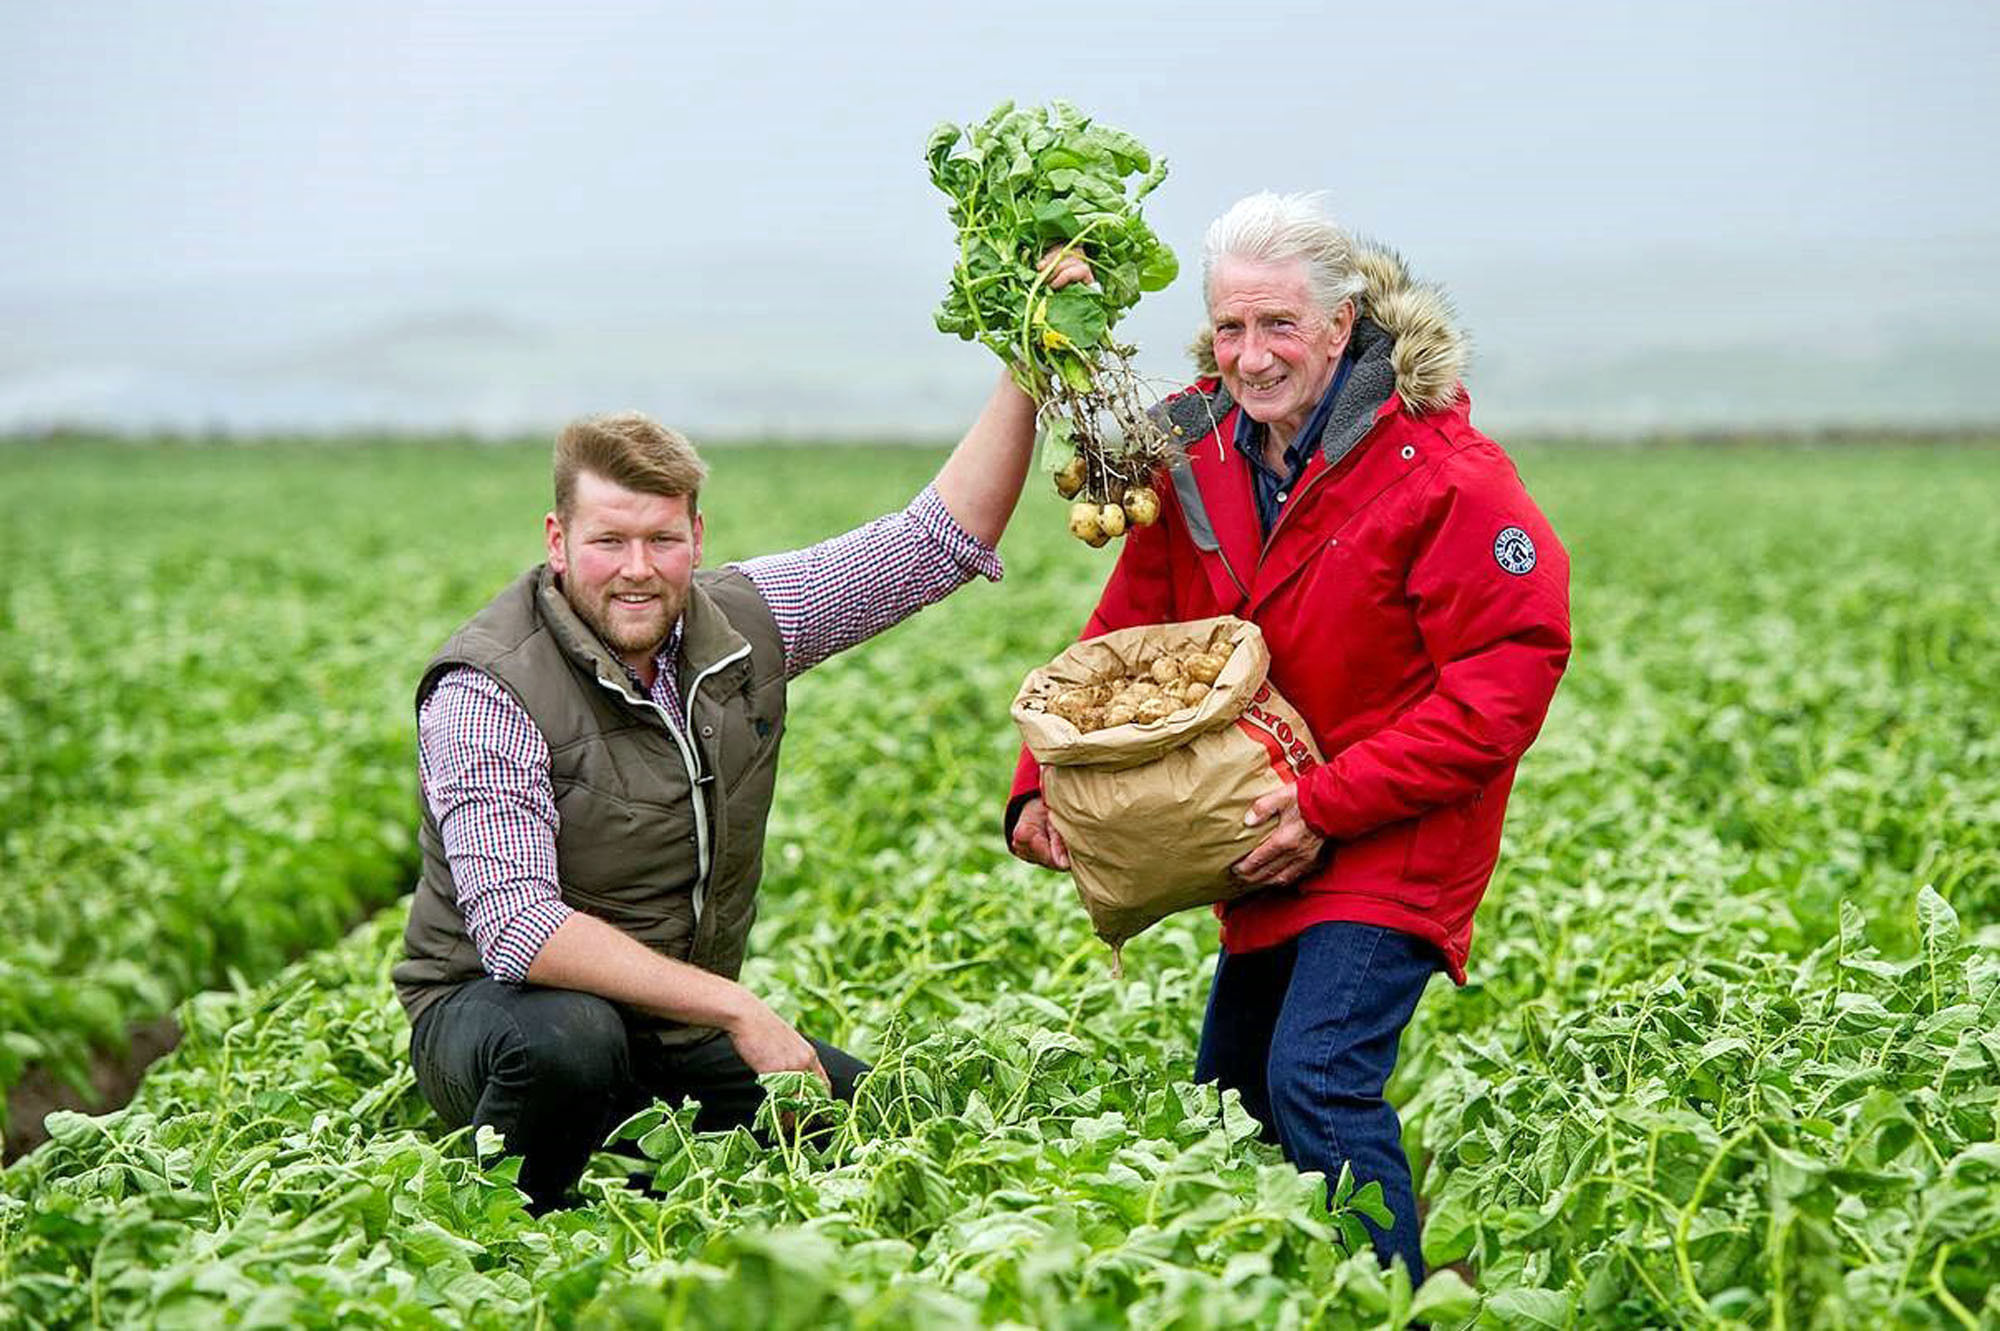 Potato picker: Man makes 1000-mile trip to Ayrshire to pick his favourite tatties